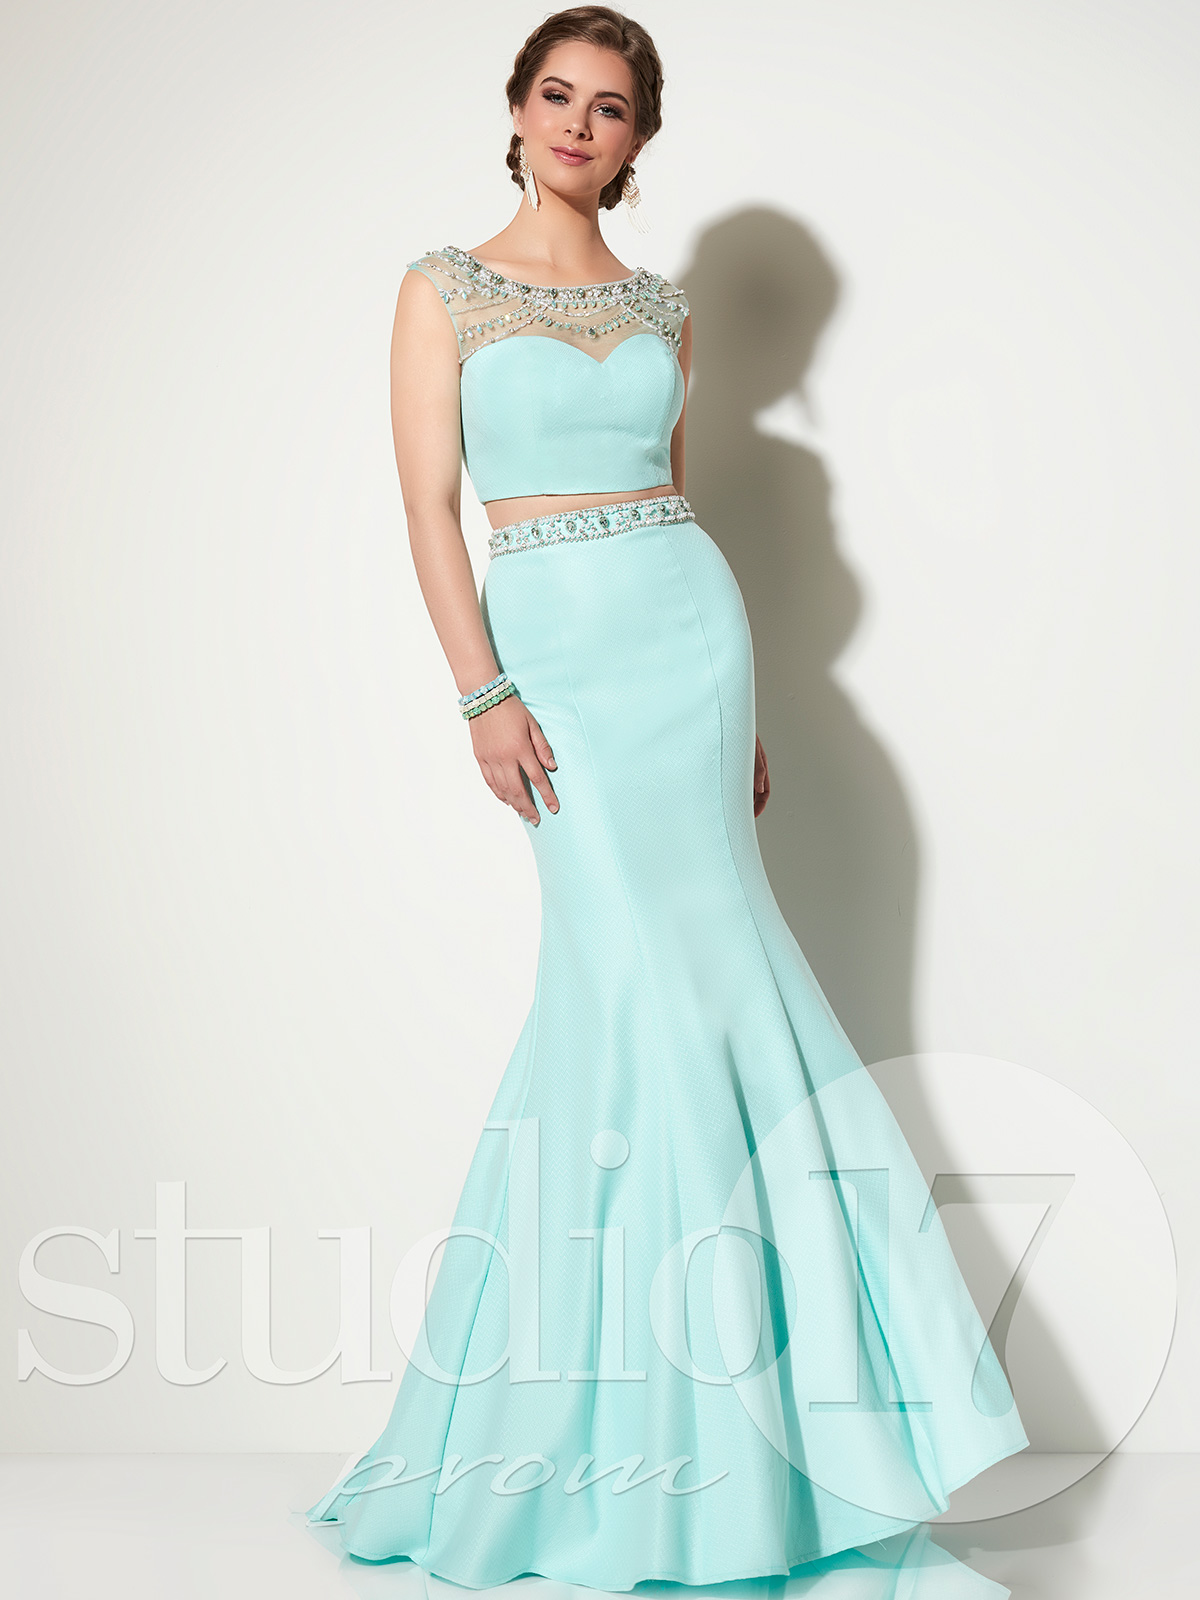 Best Delias Prom Dresses Pictures - Styles & Ideas 2018 - sperr.us